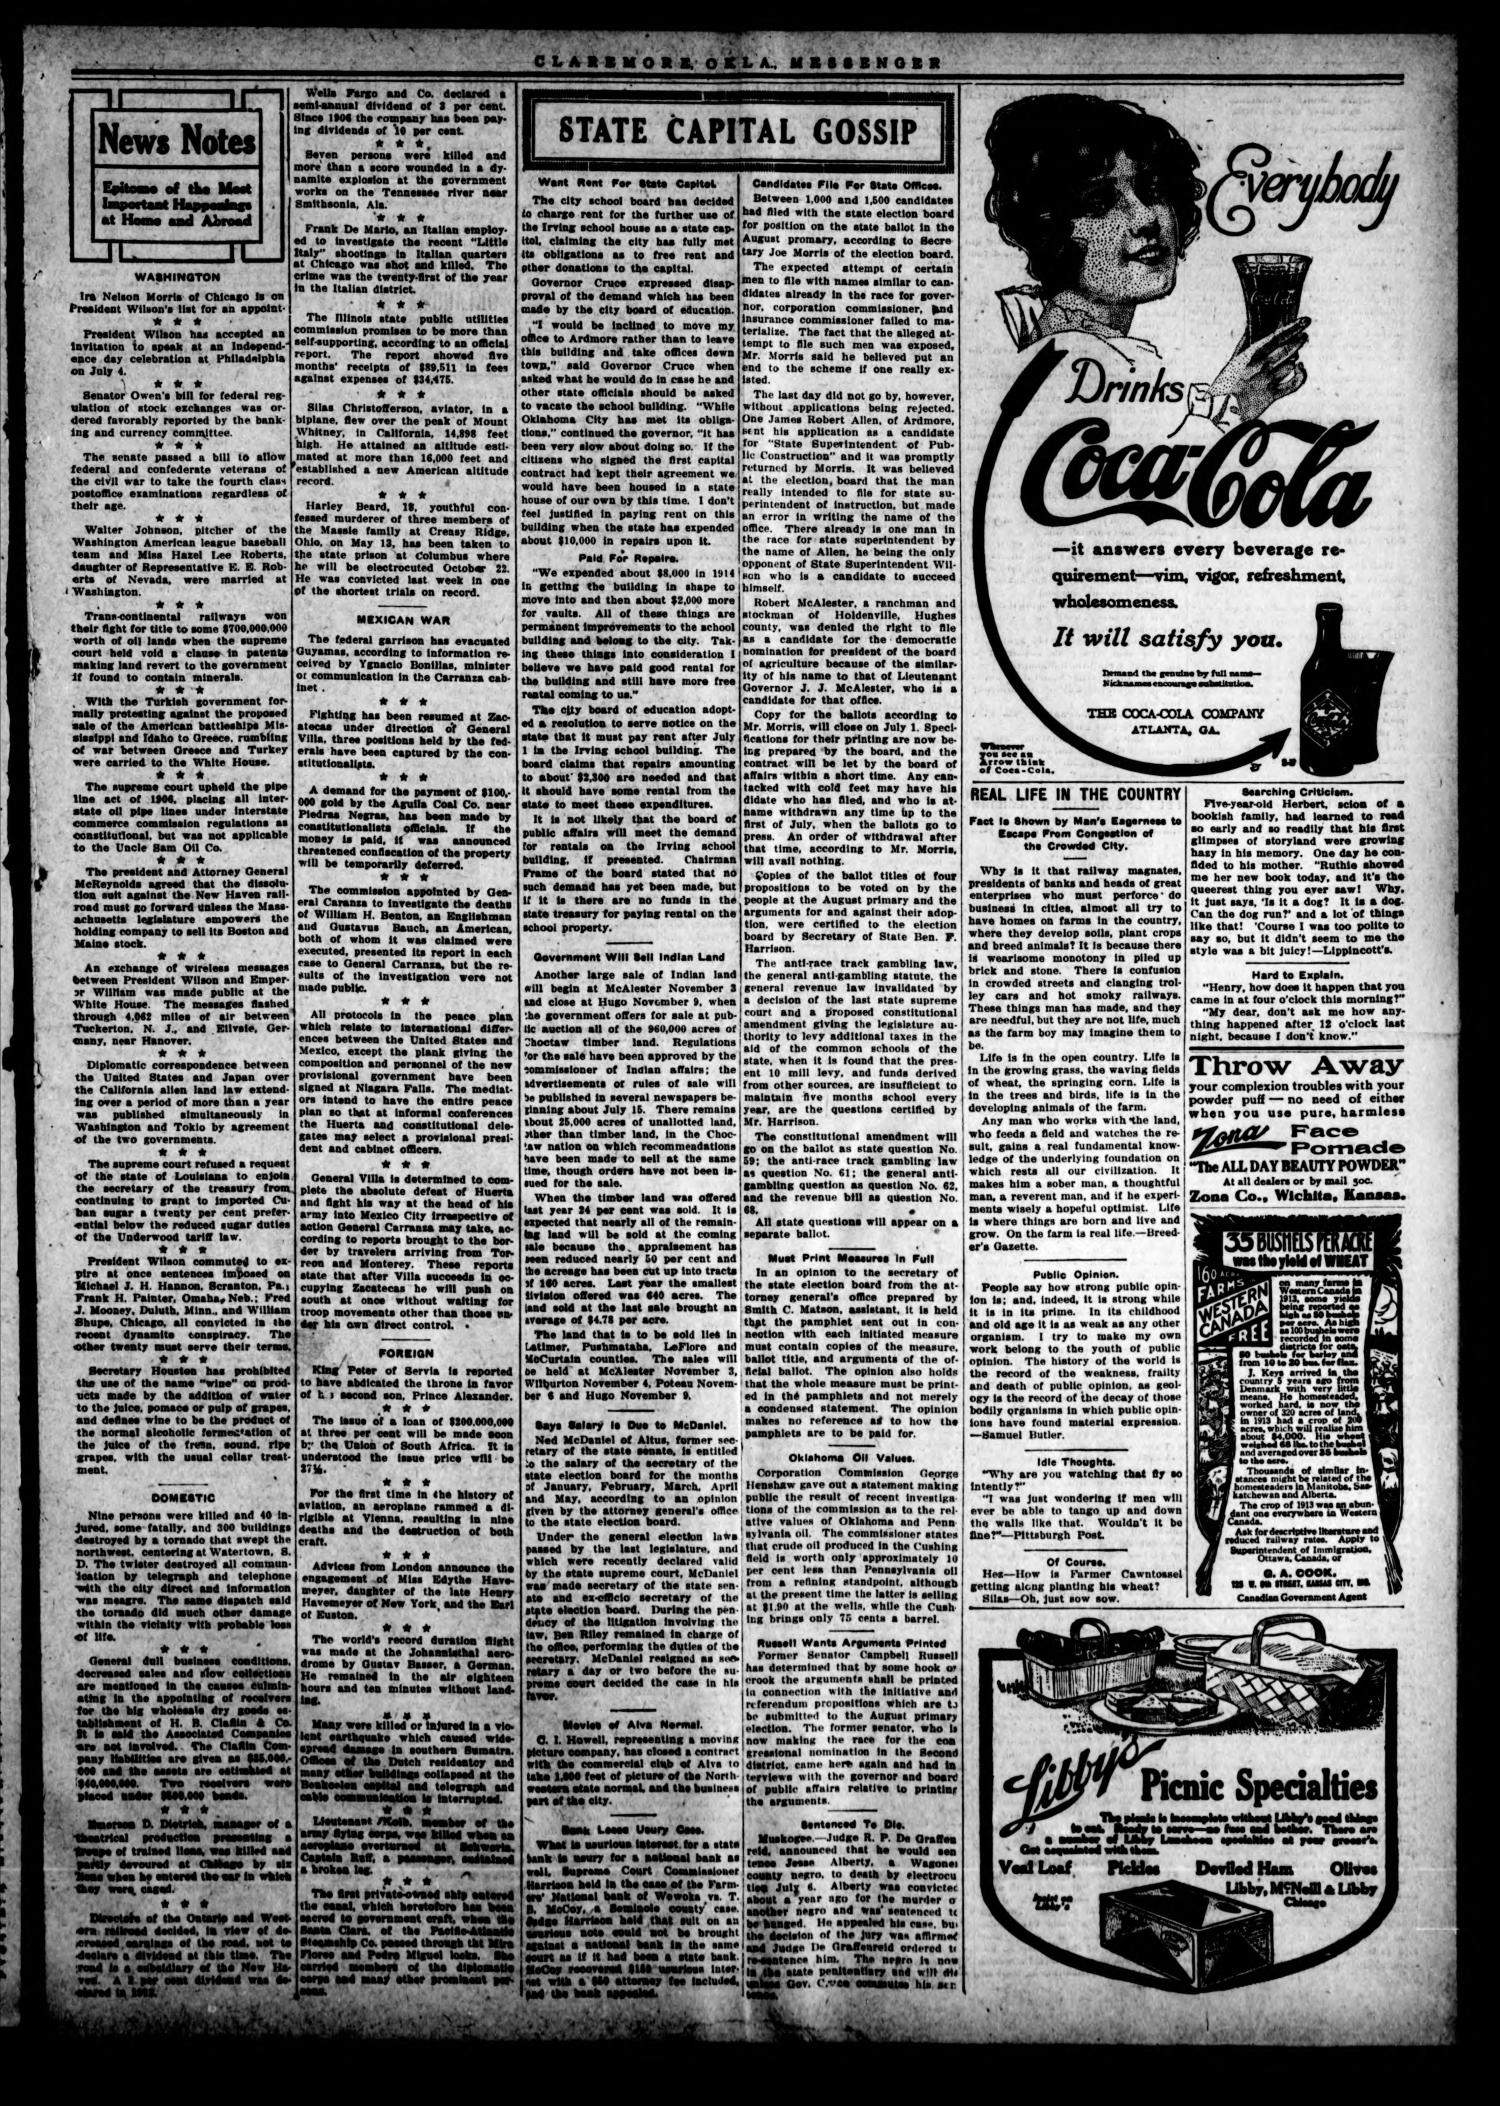 Claremore Messenger. (Claremore, Okla.), Vol. 19, No. 29, Ed. 1 Friday, July 3, 1914                                                                                                      [Sequence #]: 3 of 8